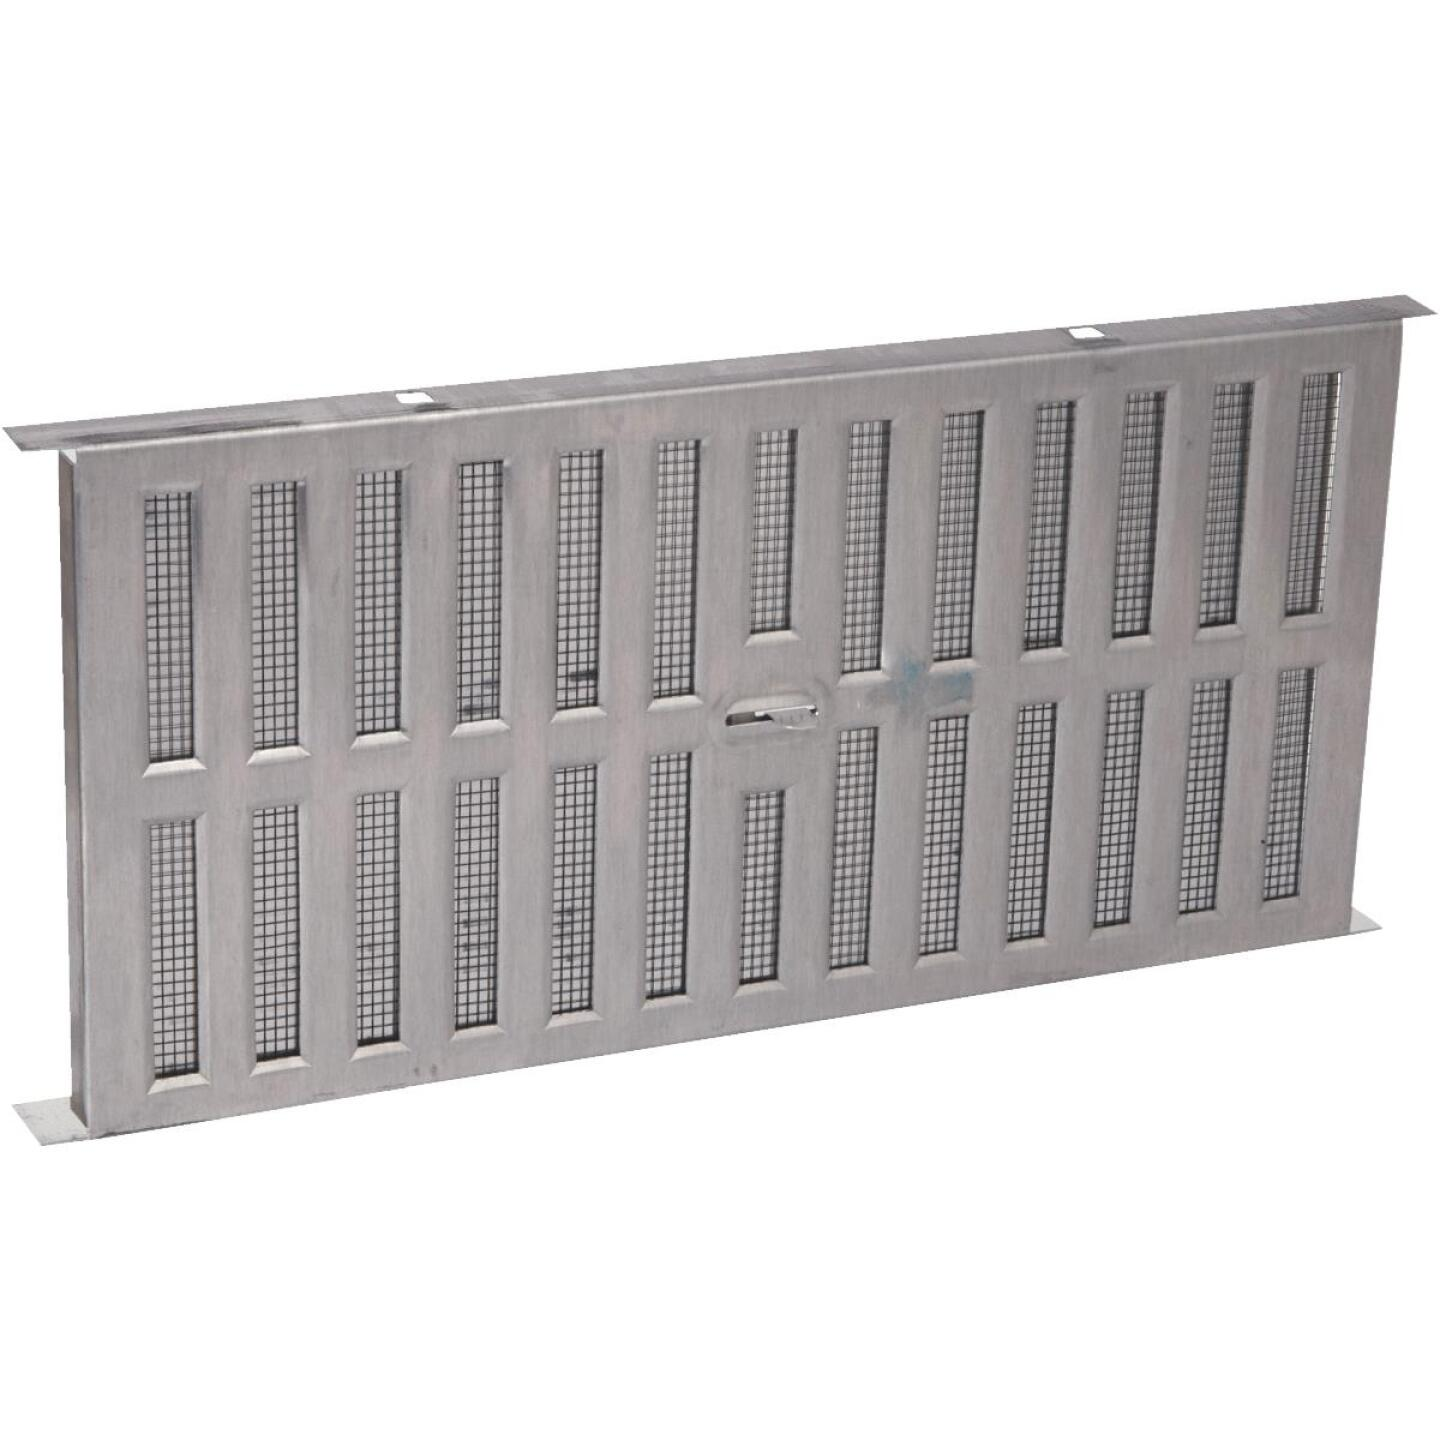 Air Vent 8 In. x 16 In. Aluminum Manual Foundation Vent with Adjustable Sliding Damper Image 1